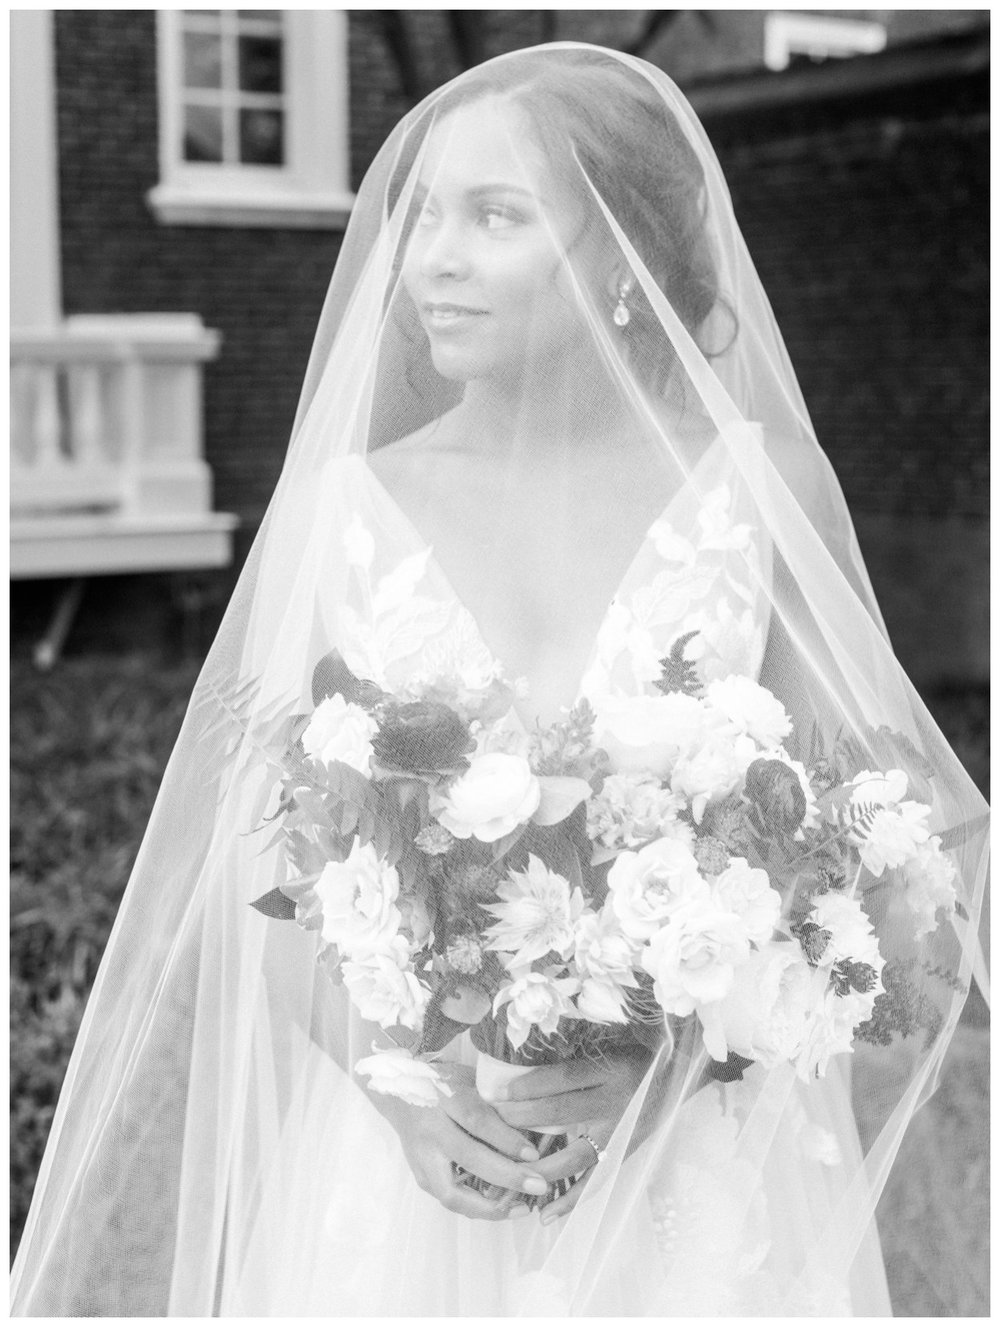 Sun drenched fall wedding in shades of pink at Oxon Hill Manor in Maryland black and white bridal portrait with veil by fine art wedding photographer Lissa Ryan Photography